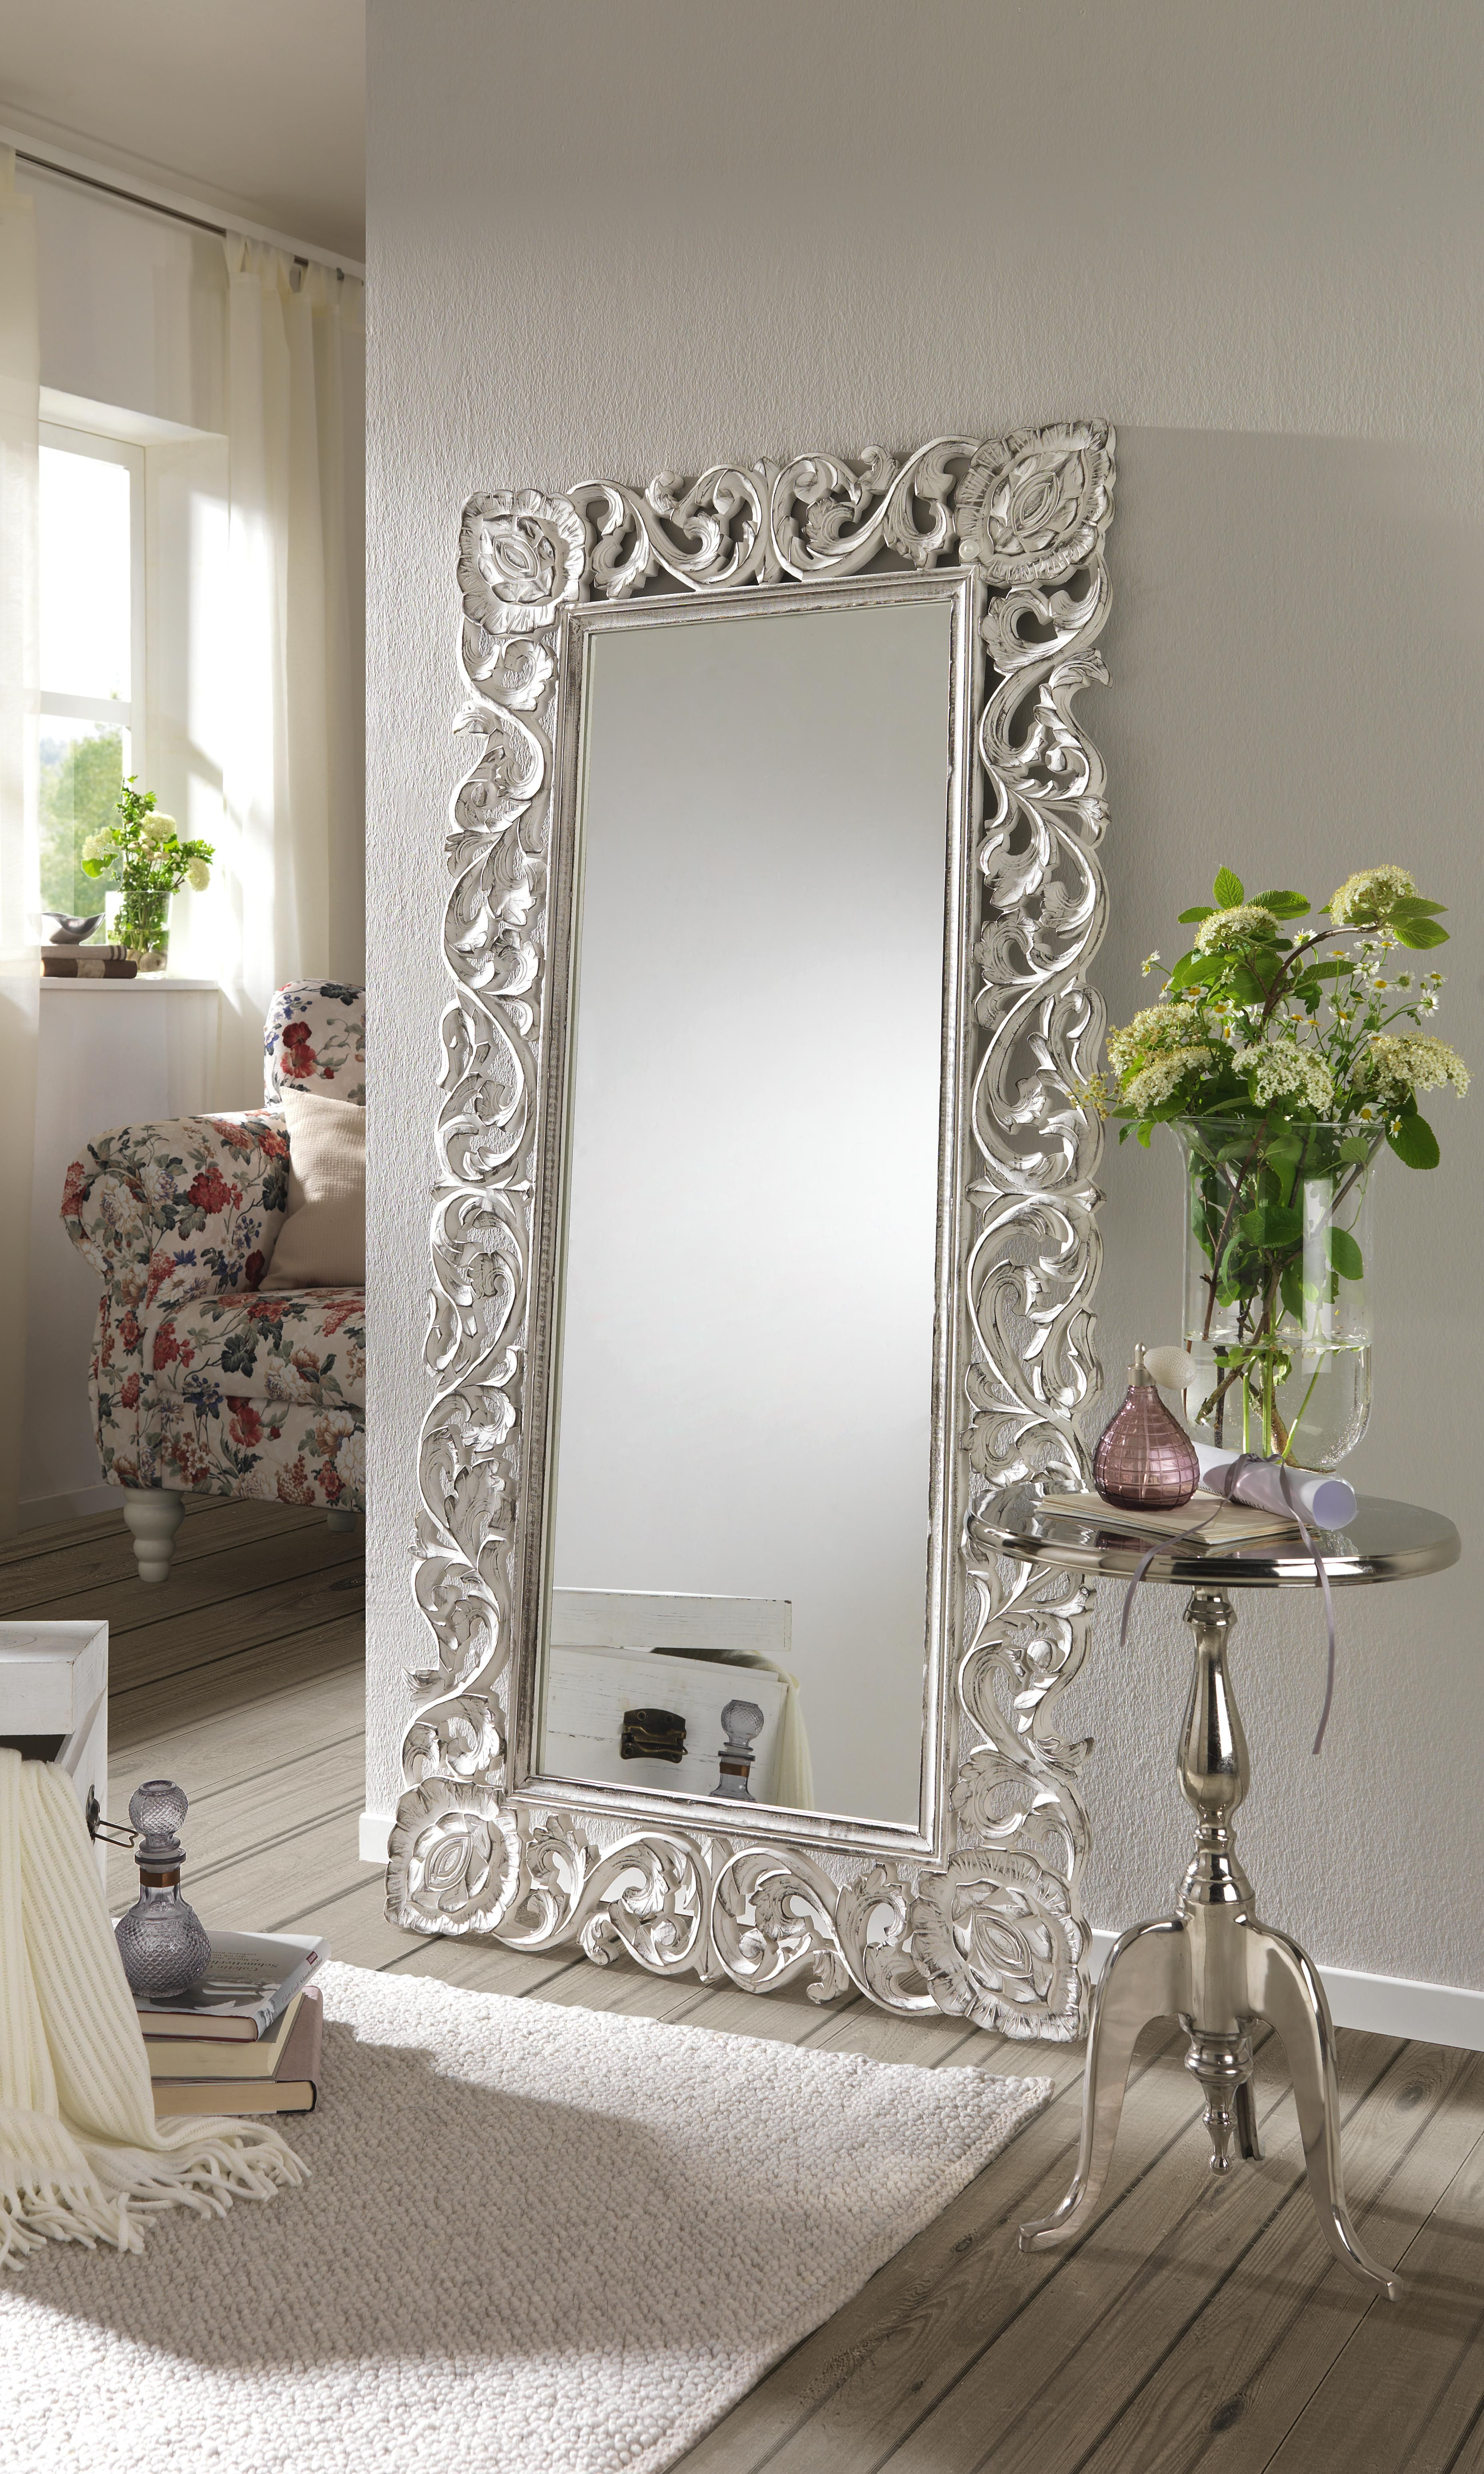 40 Modern Wall Mirror Design Ideas For Home Wall Decor 2019 Ceiling Design Bedroom Mirror Design Wall Wardrobe Design Bedroom